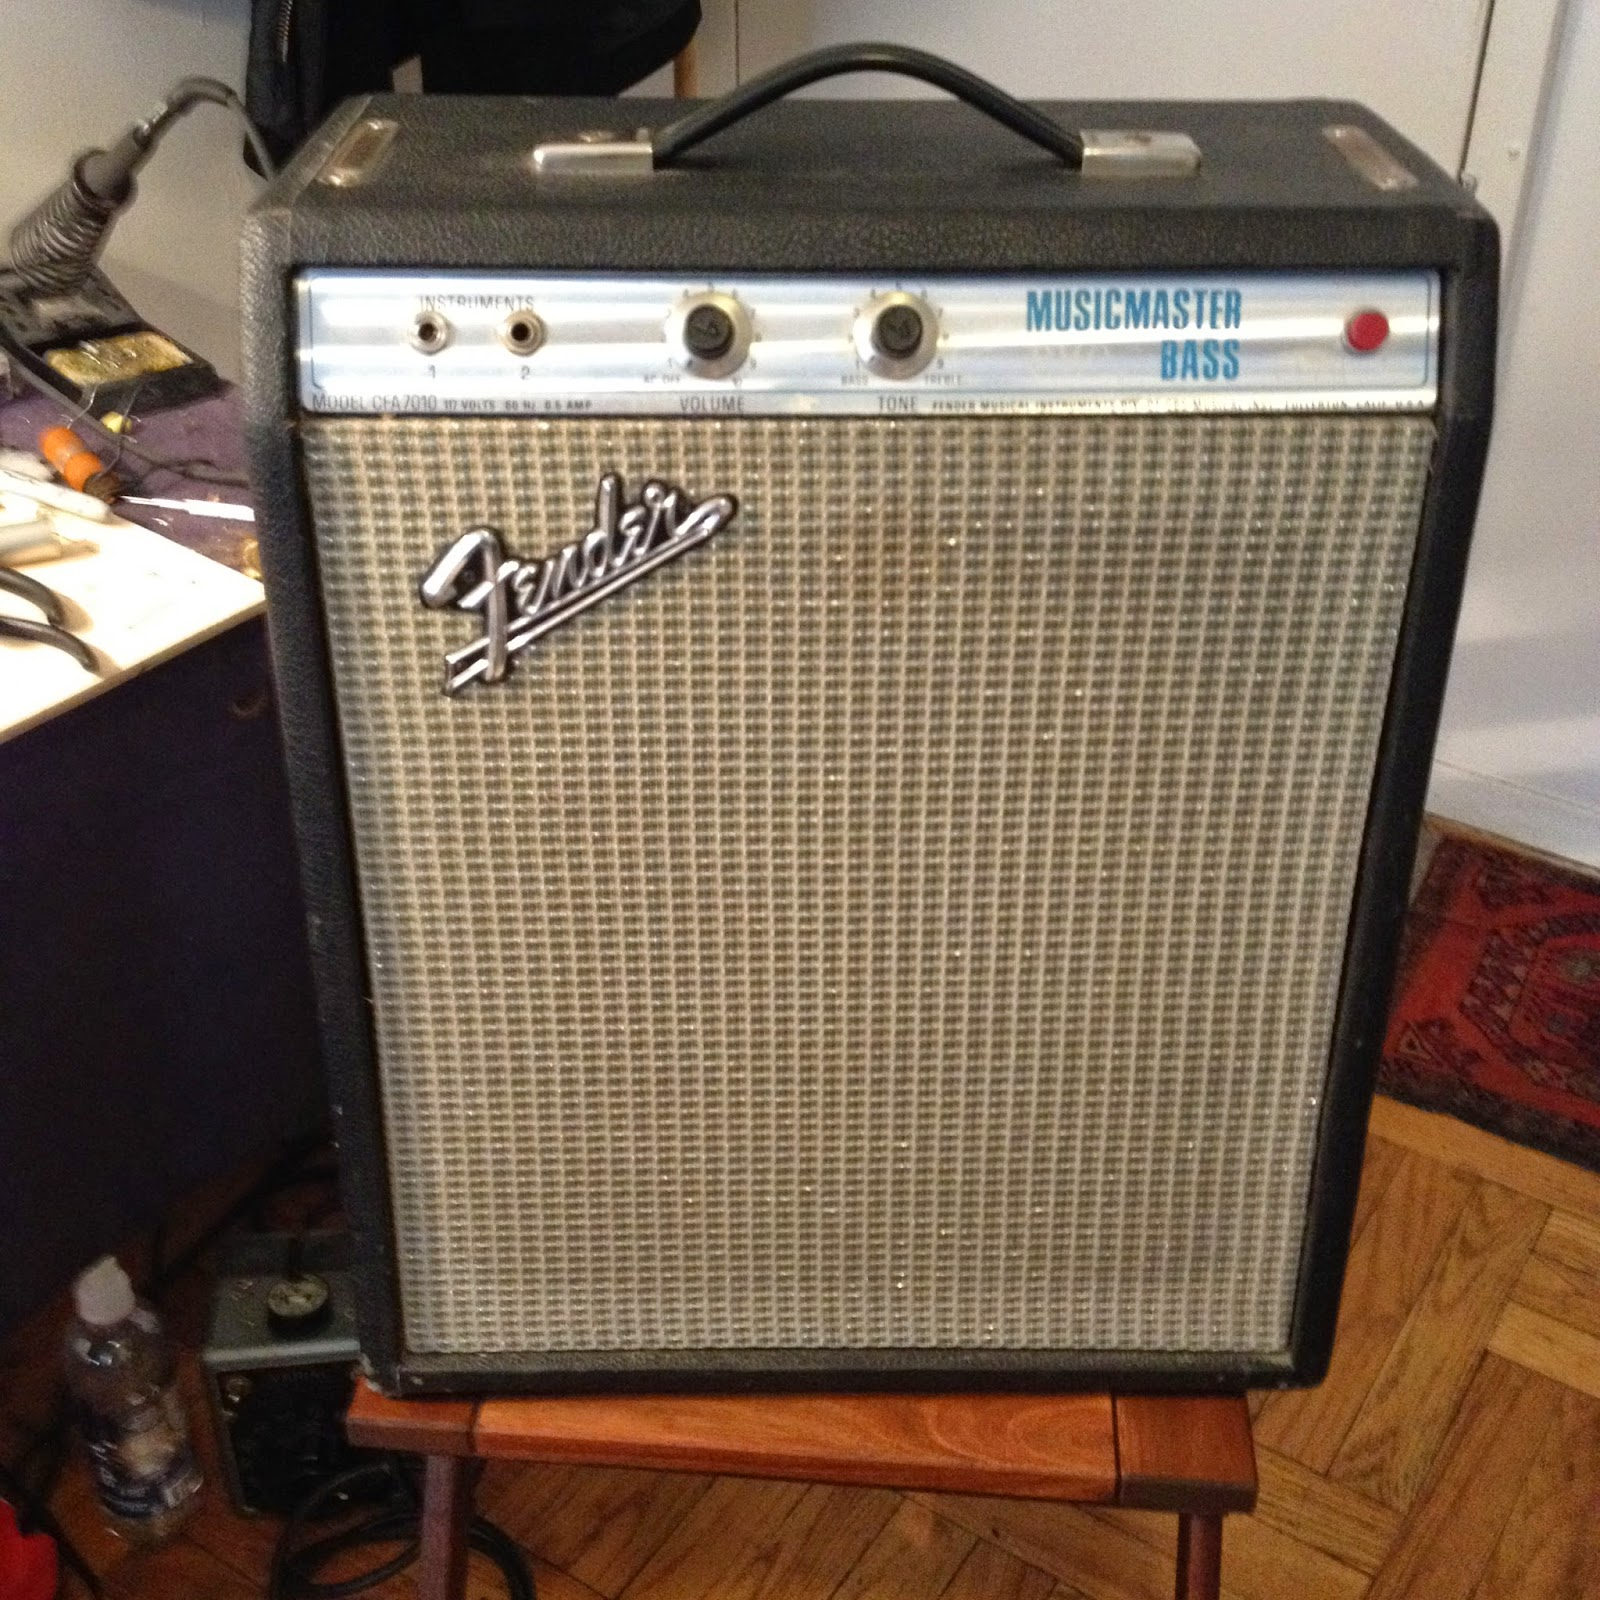 Jefs Tube Amp Blog Fender Musicmaster Bass Amplifier 70 Watt Guitar Circuit Preamplifier Tone Control For Today We Have A From The 70s Customer Complaint Was It Smelled Burnt And Volume Rather Low Also Had Faulty Input Jack